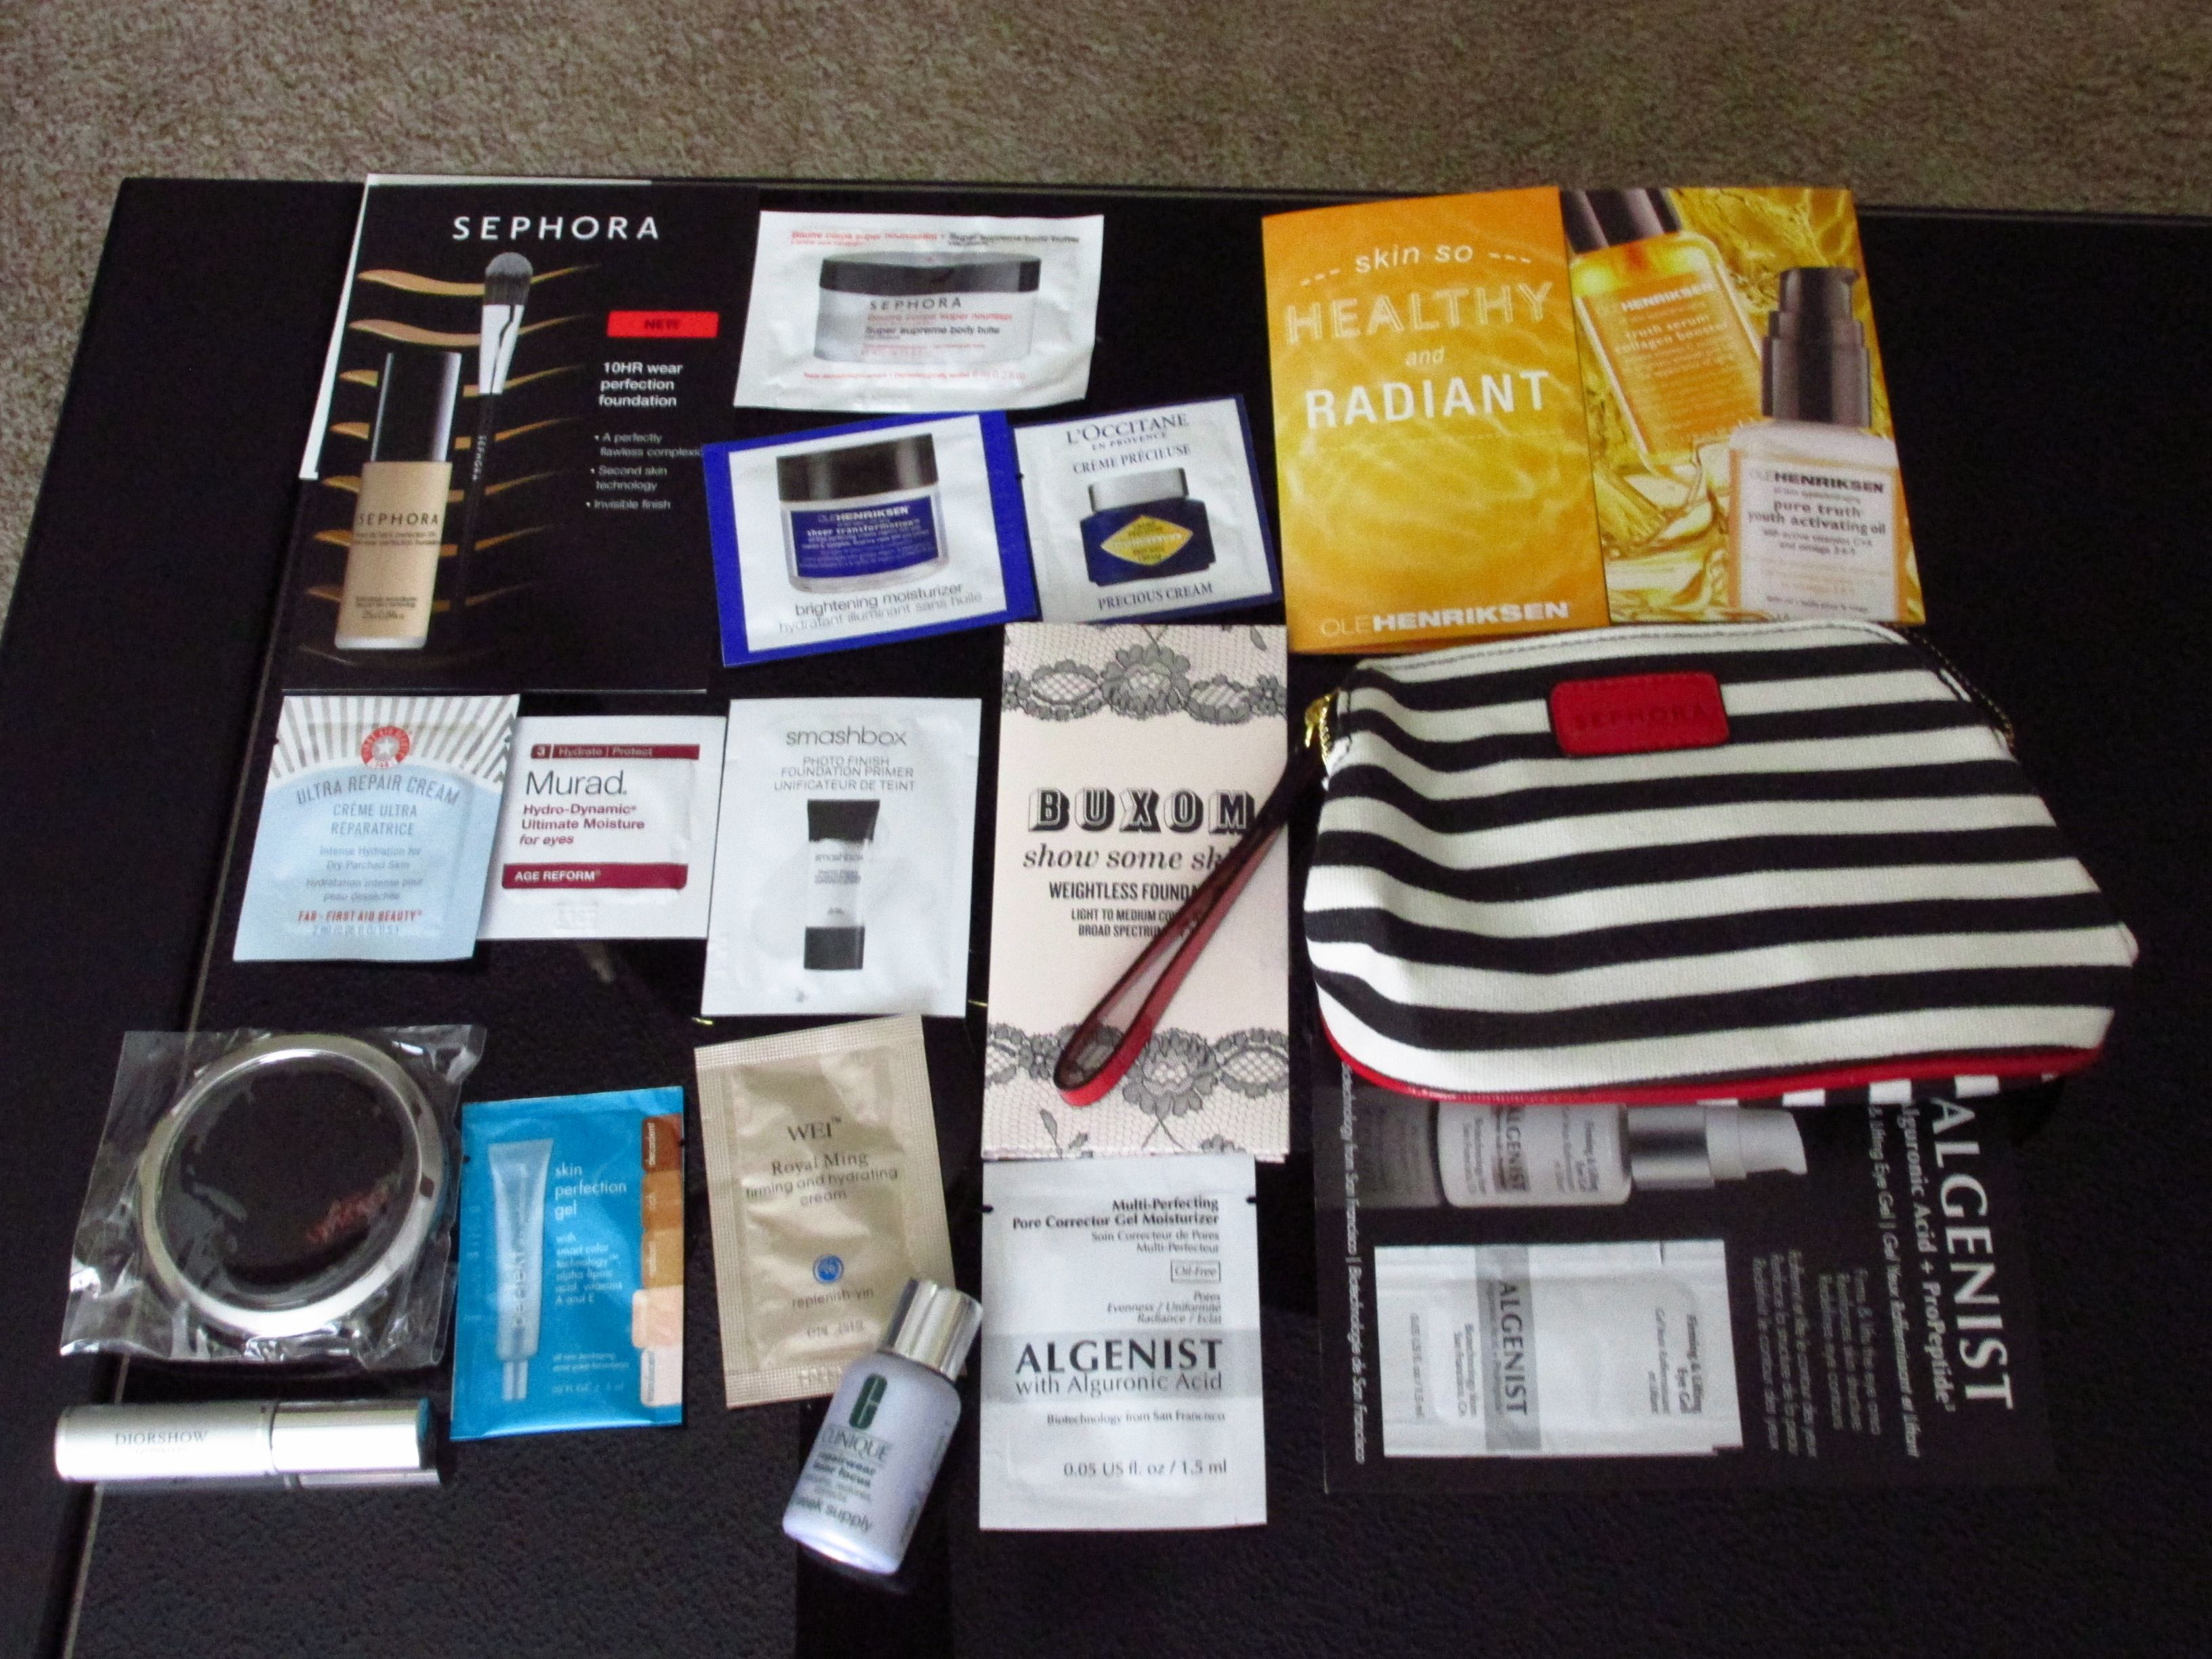 How to get free samples from sephora in store